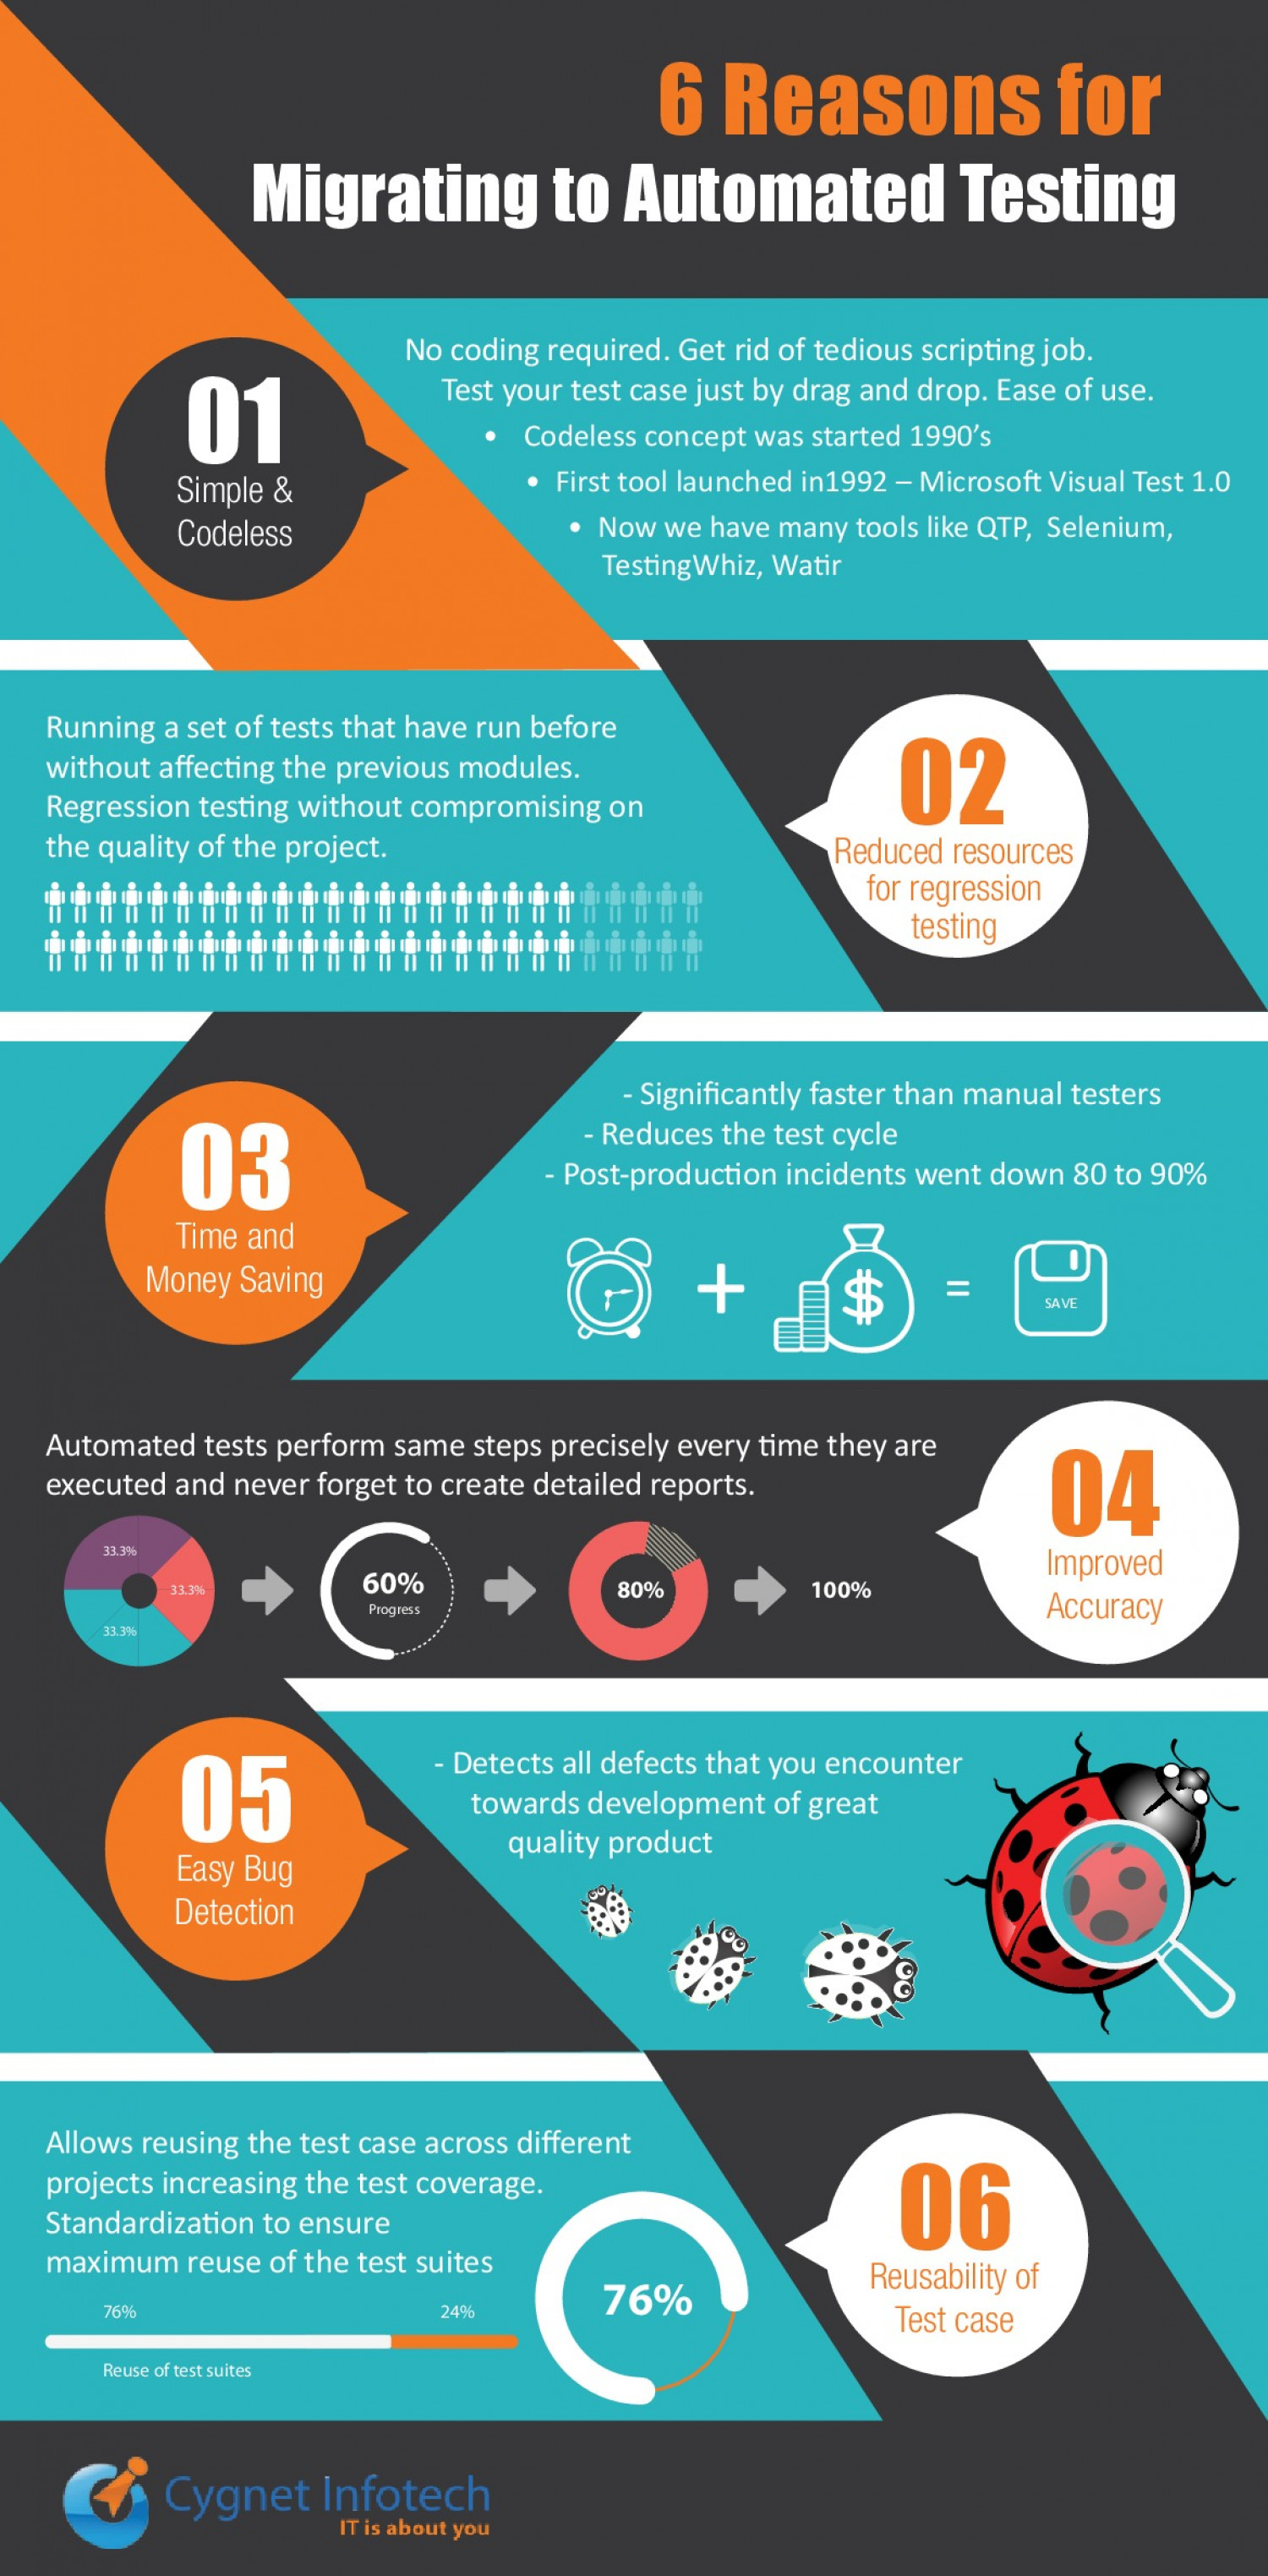 6 Reasons for Migrating to Automated Testing Infographic